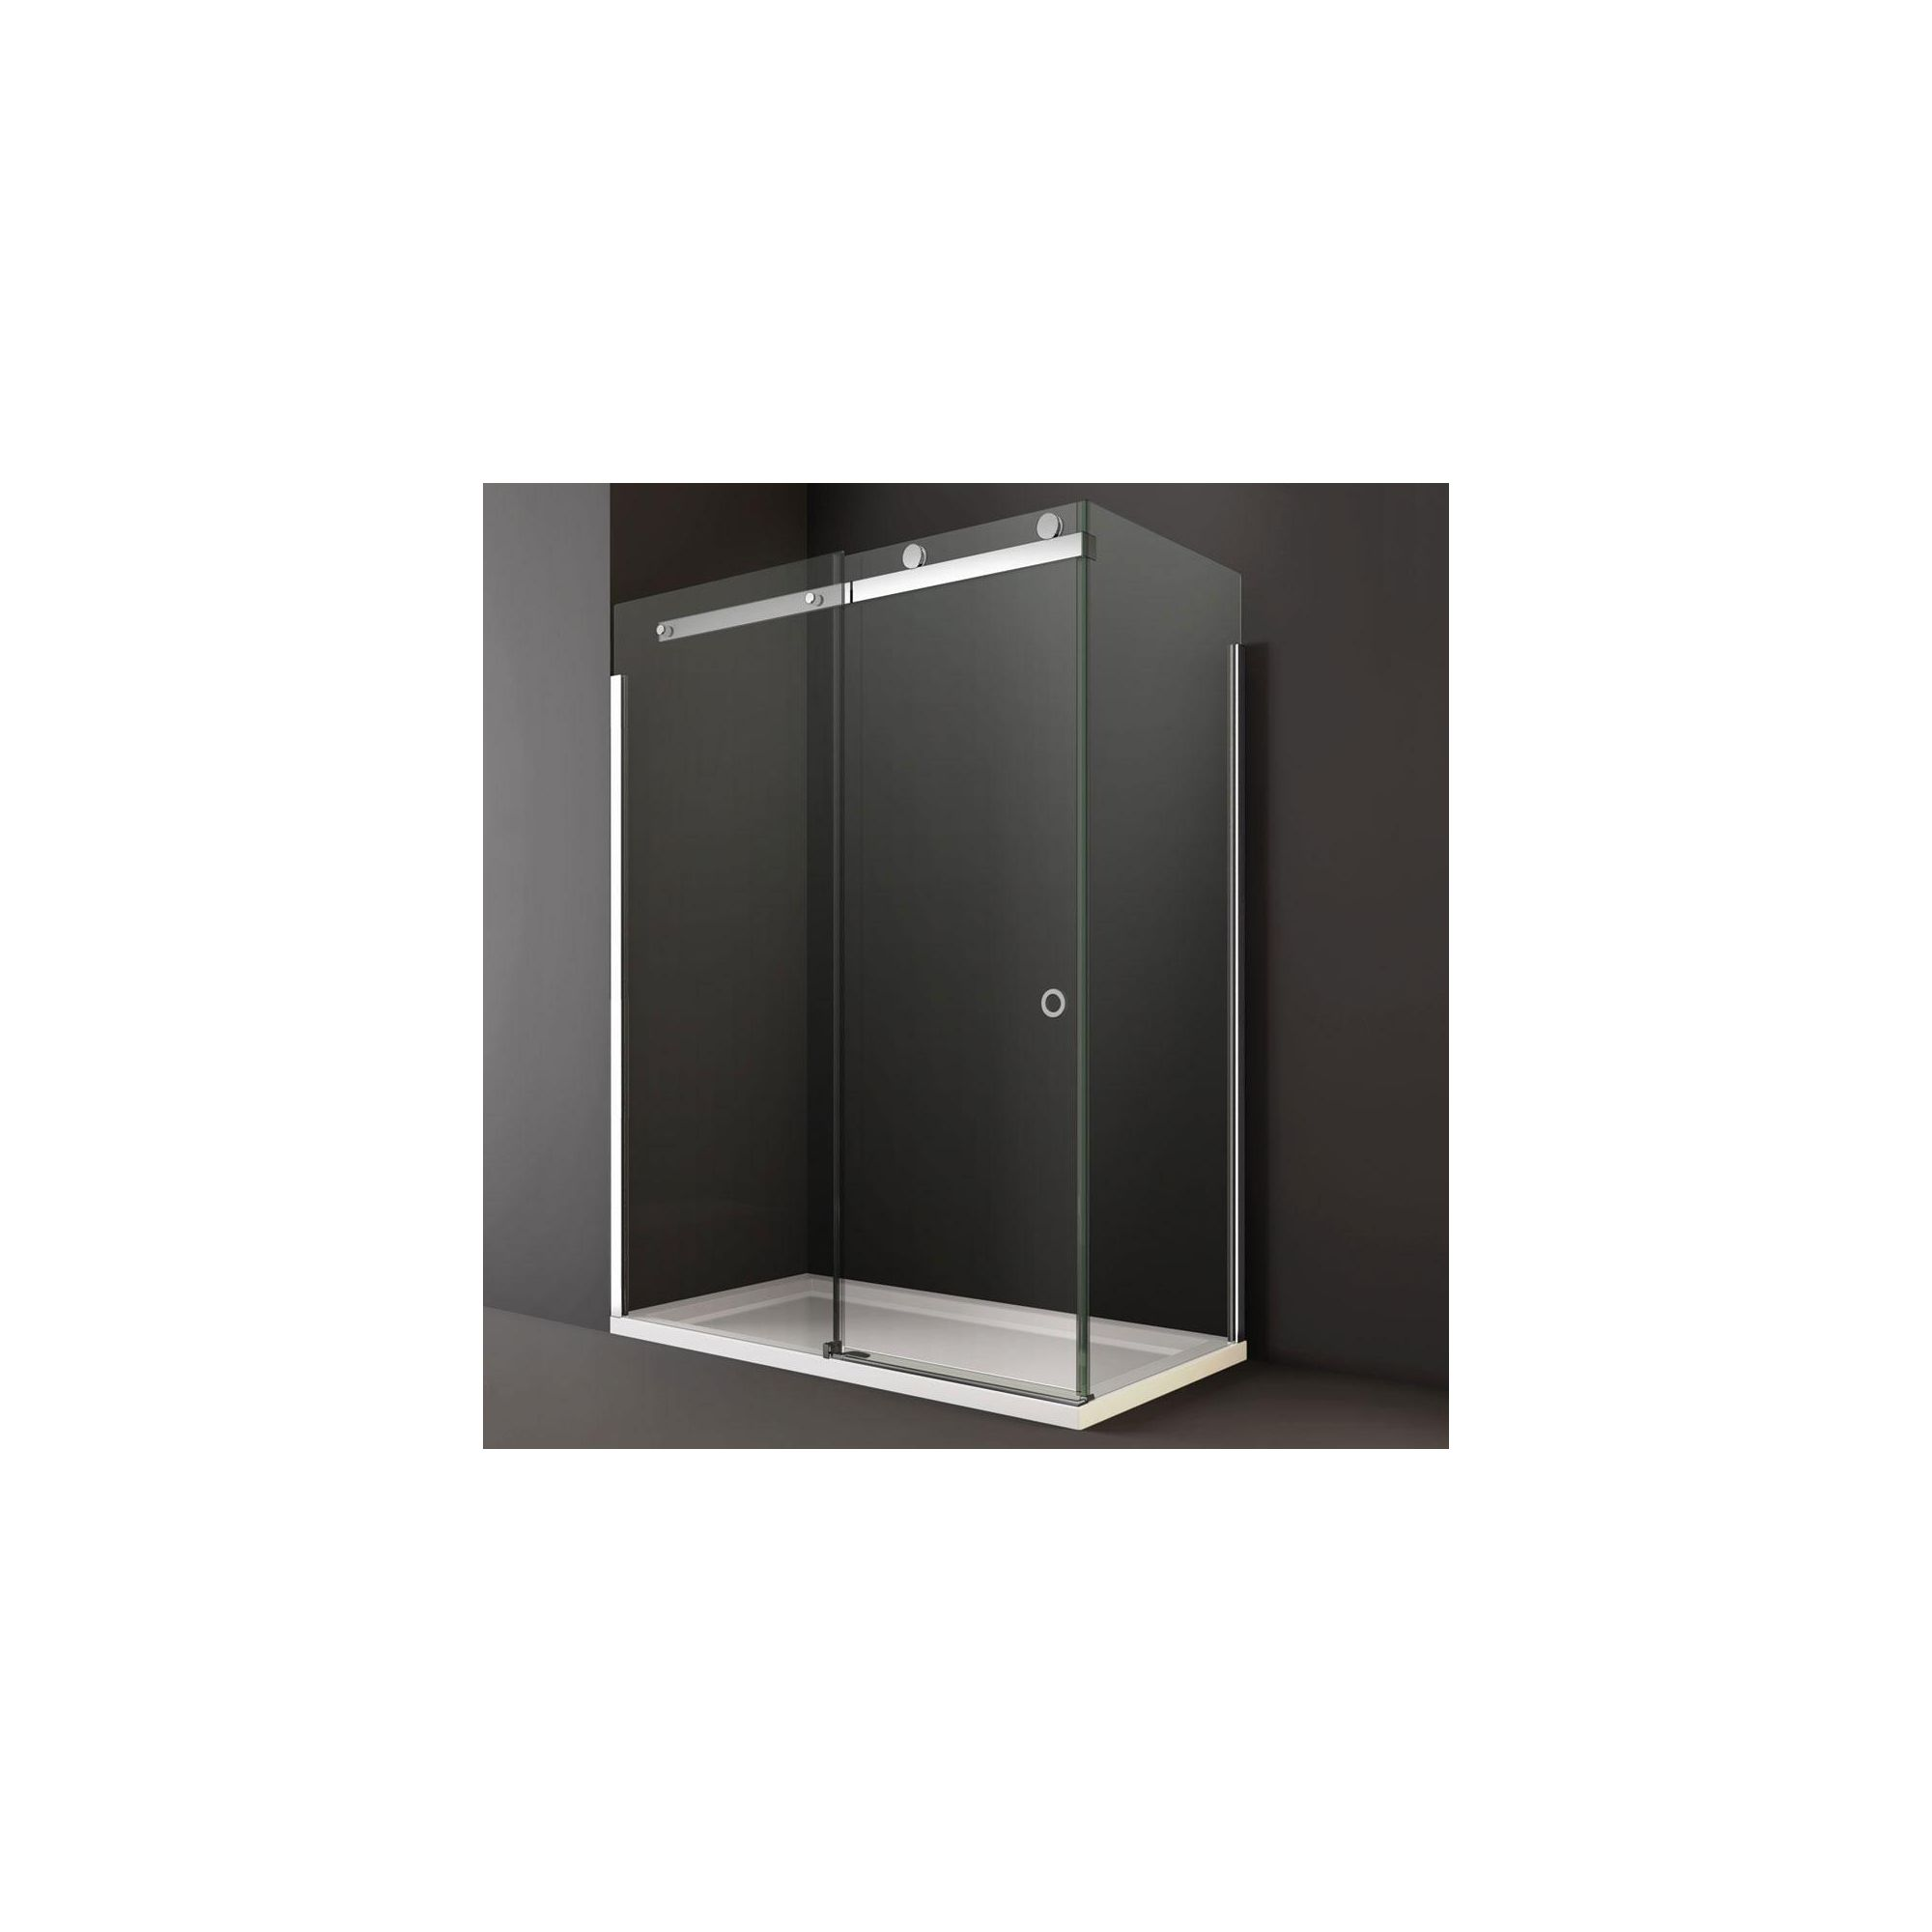 Merlyn Series 10 Sliding Shower Door, 1200mm Wide, 10mm Smoked Glass, Left Handed at Tesco Direct